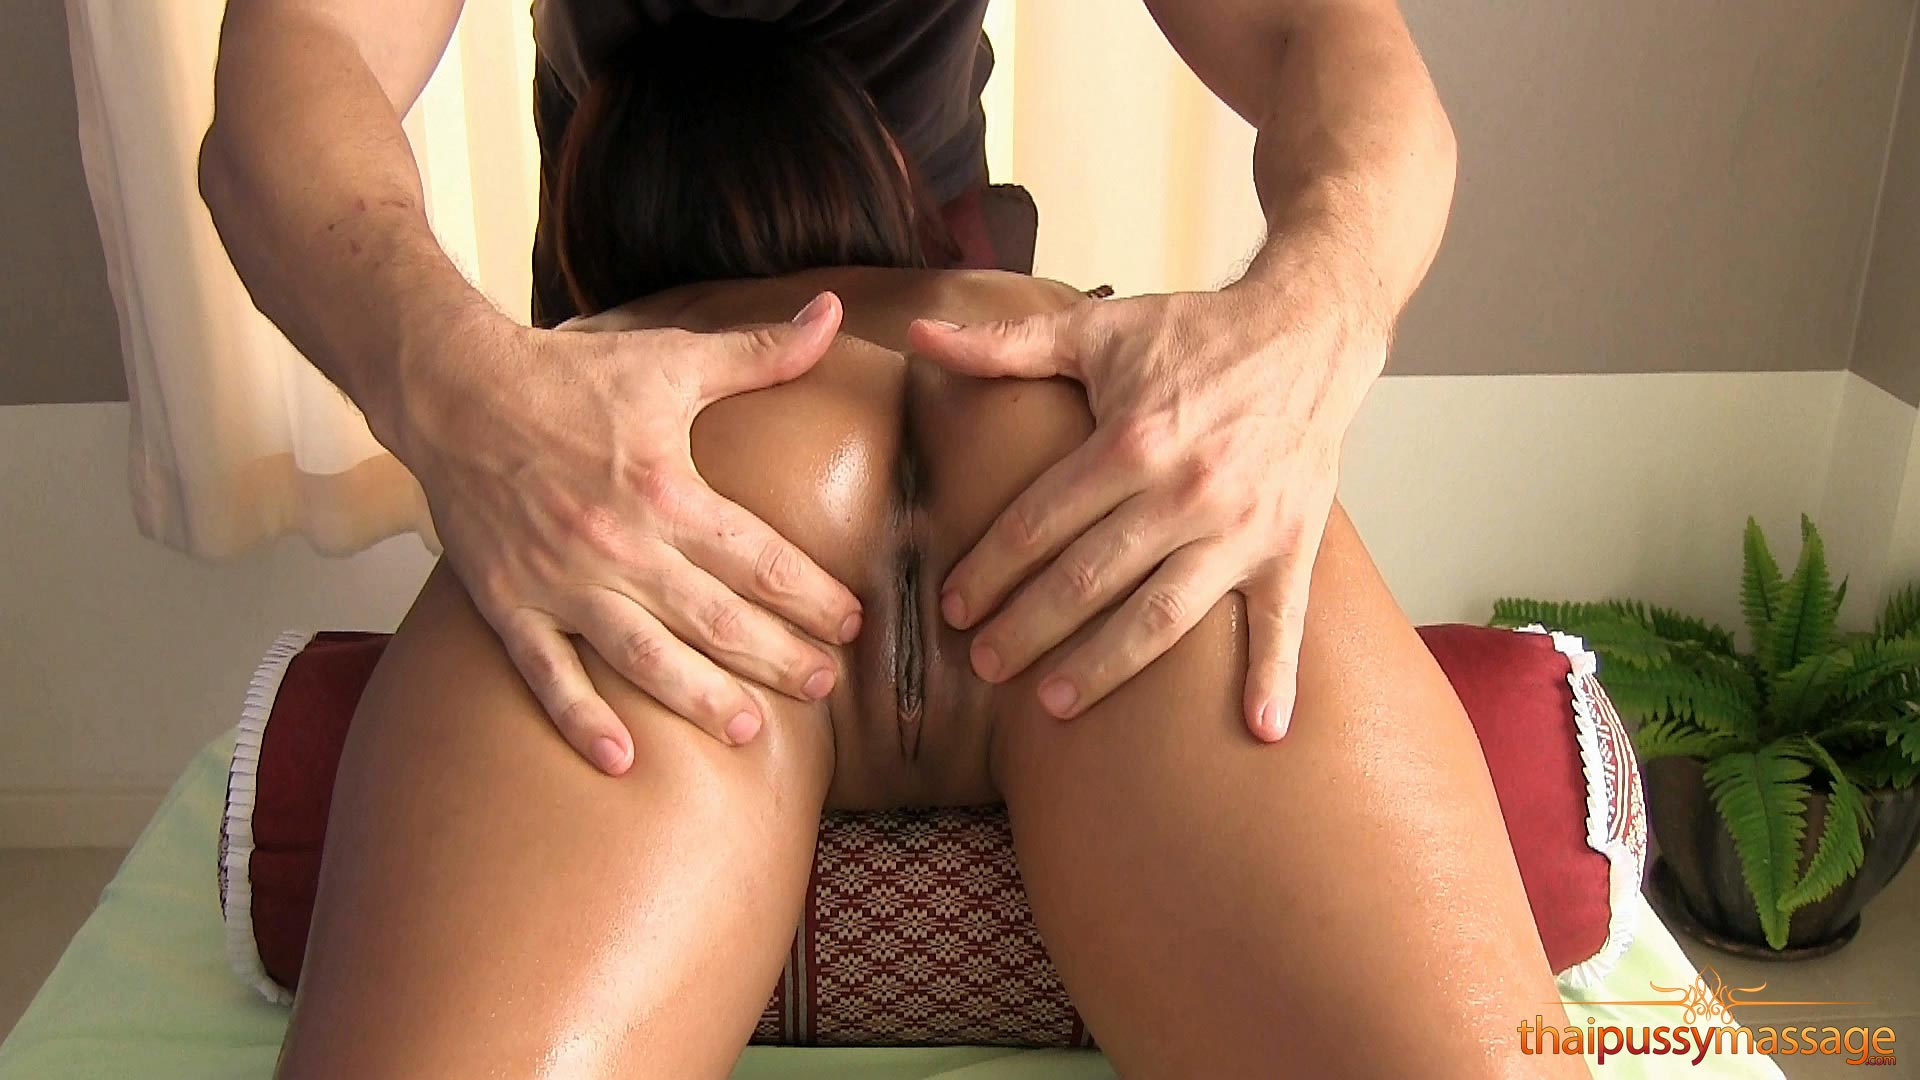 nice erotic massage xxx thai